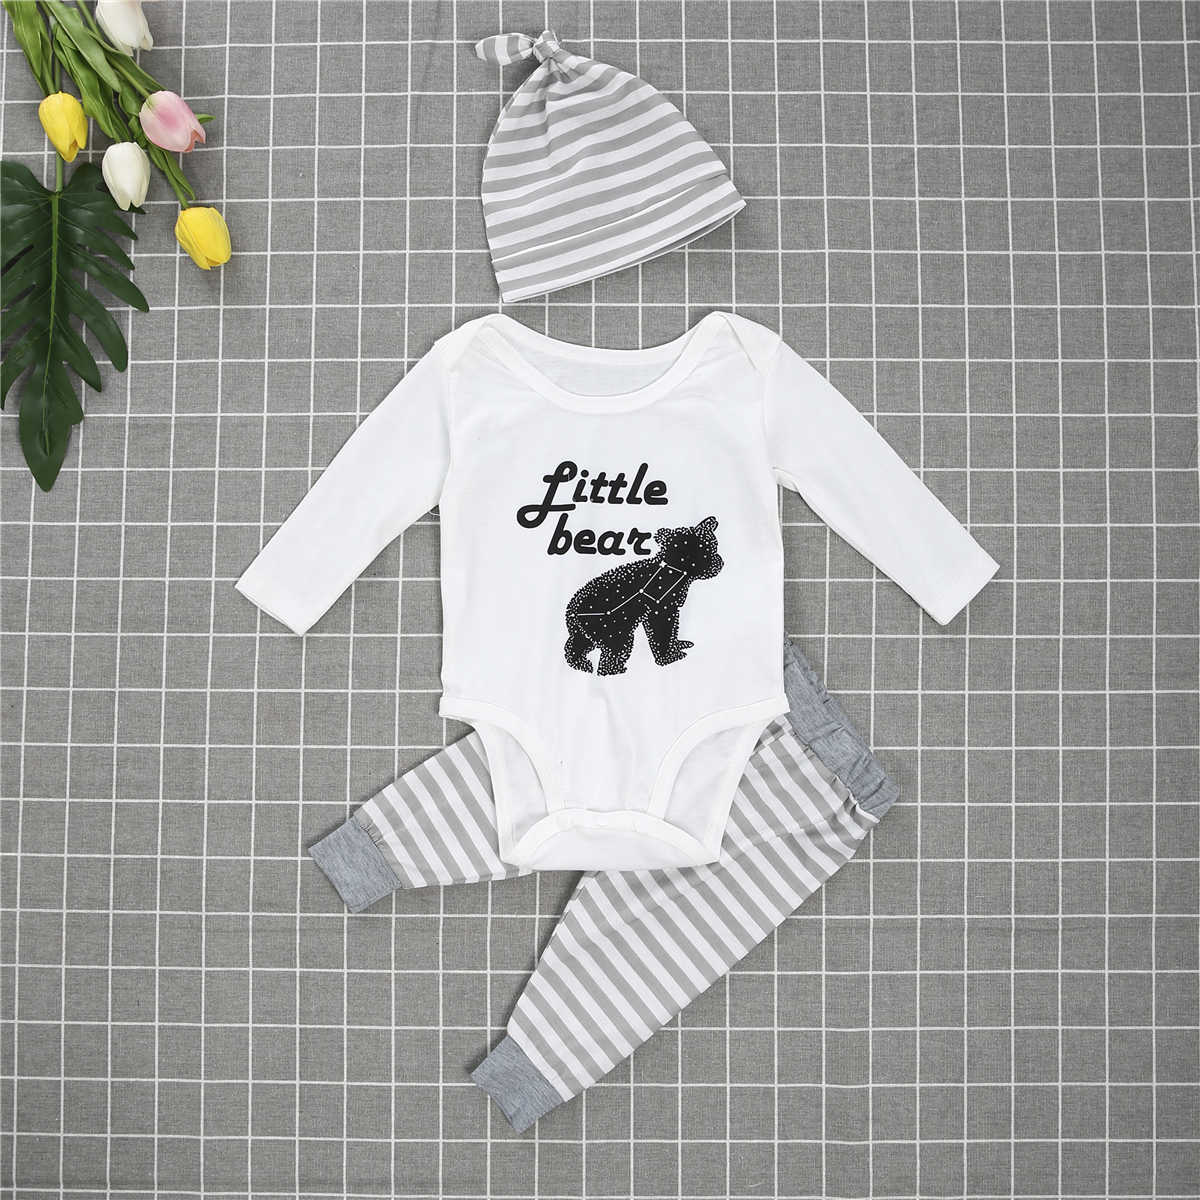 2019  Family Matching Casual Pajama Outfit Parent-Child Cotton Sleepwear